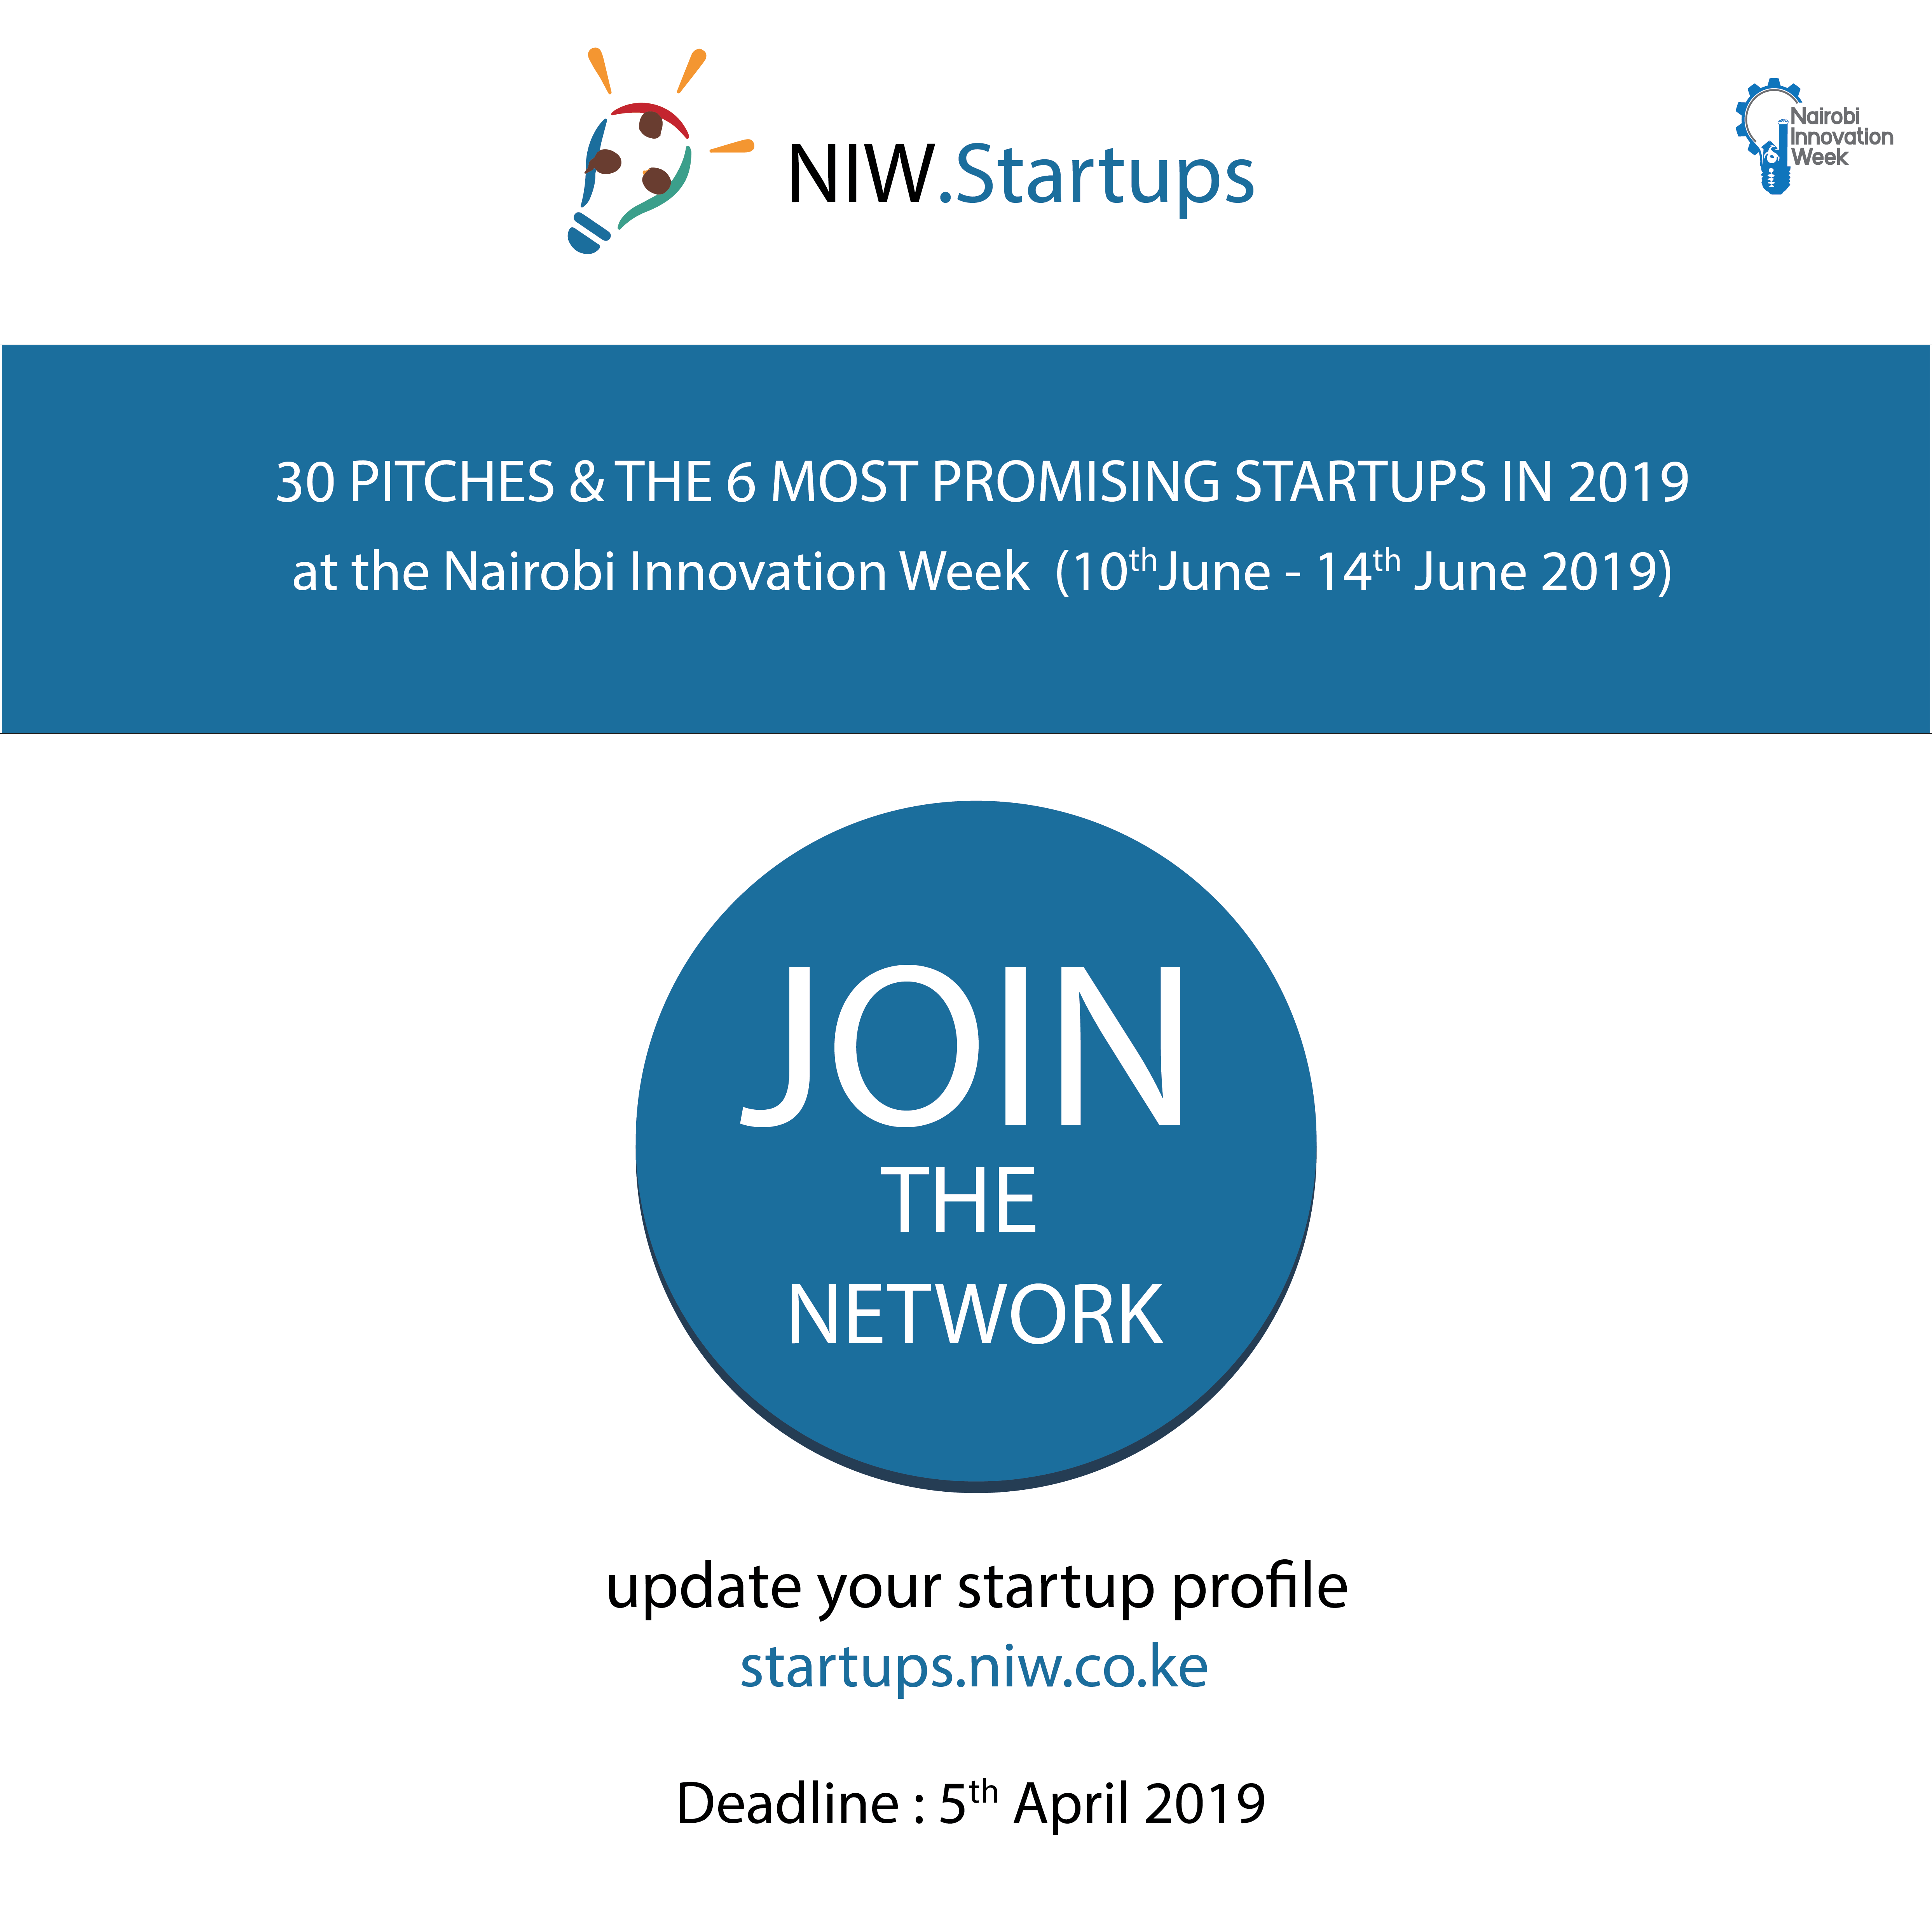 NAIROBI INNOVATION WEEK ANNOUNCES EXCLUSIVE BENEFITS FOR STARTUPS PARTICIPATING IN NIW 2019